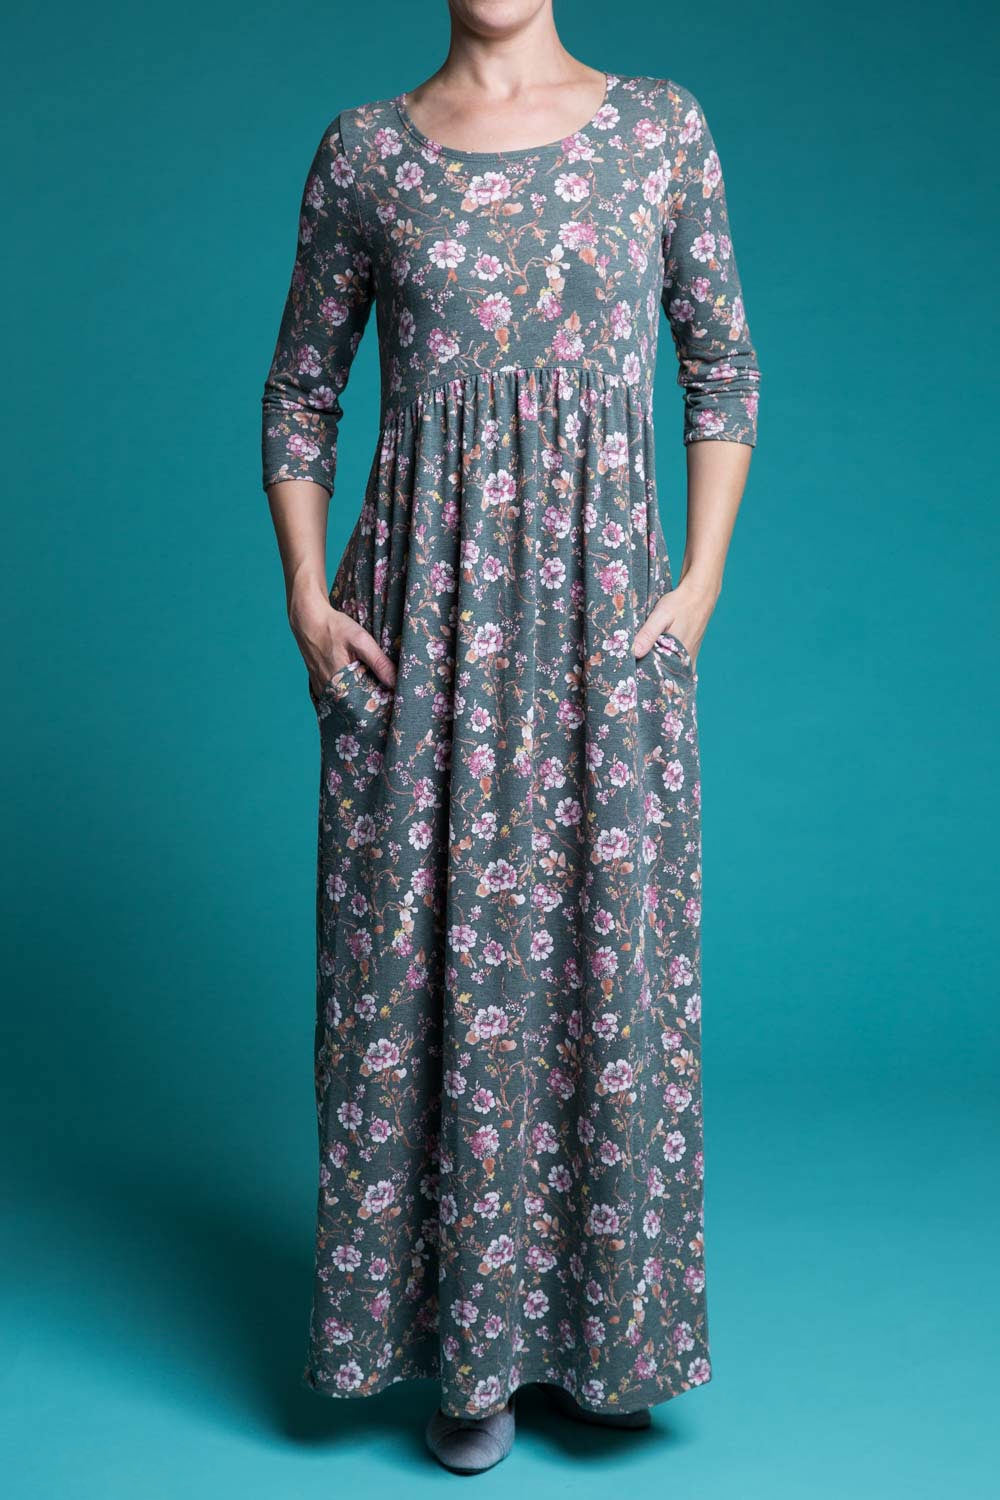 Type 2 Greens Garden Dress